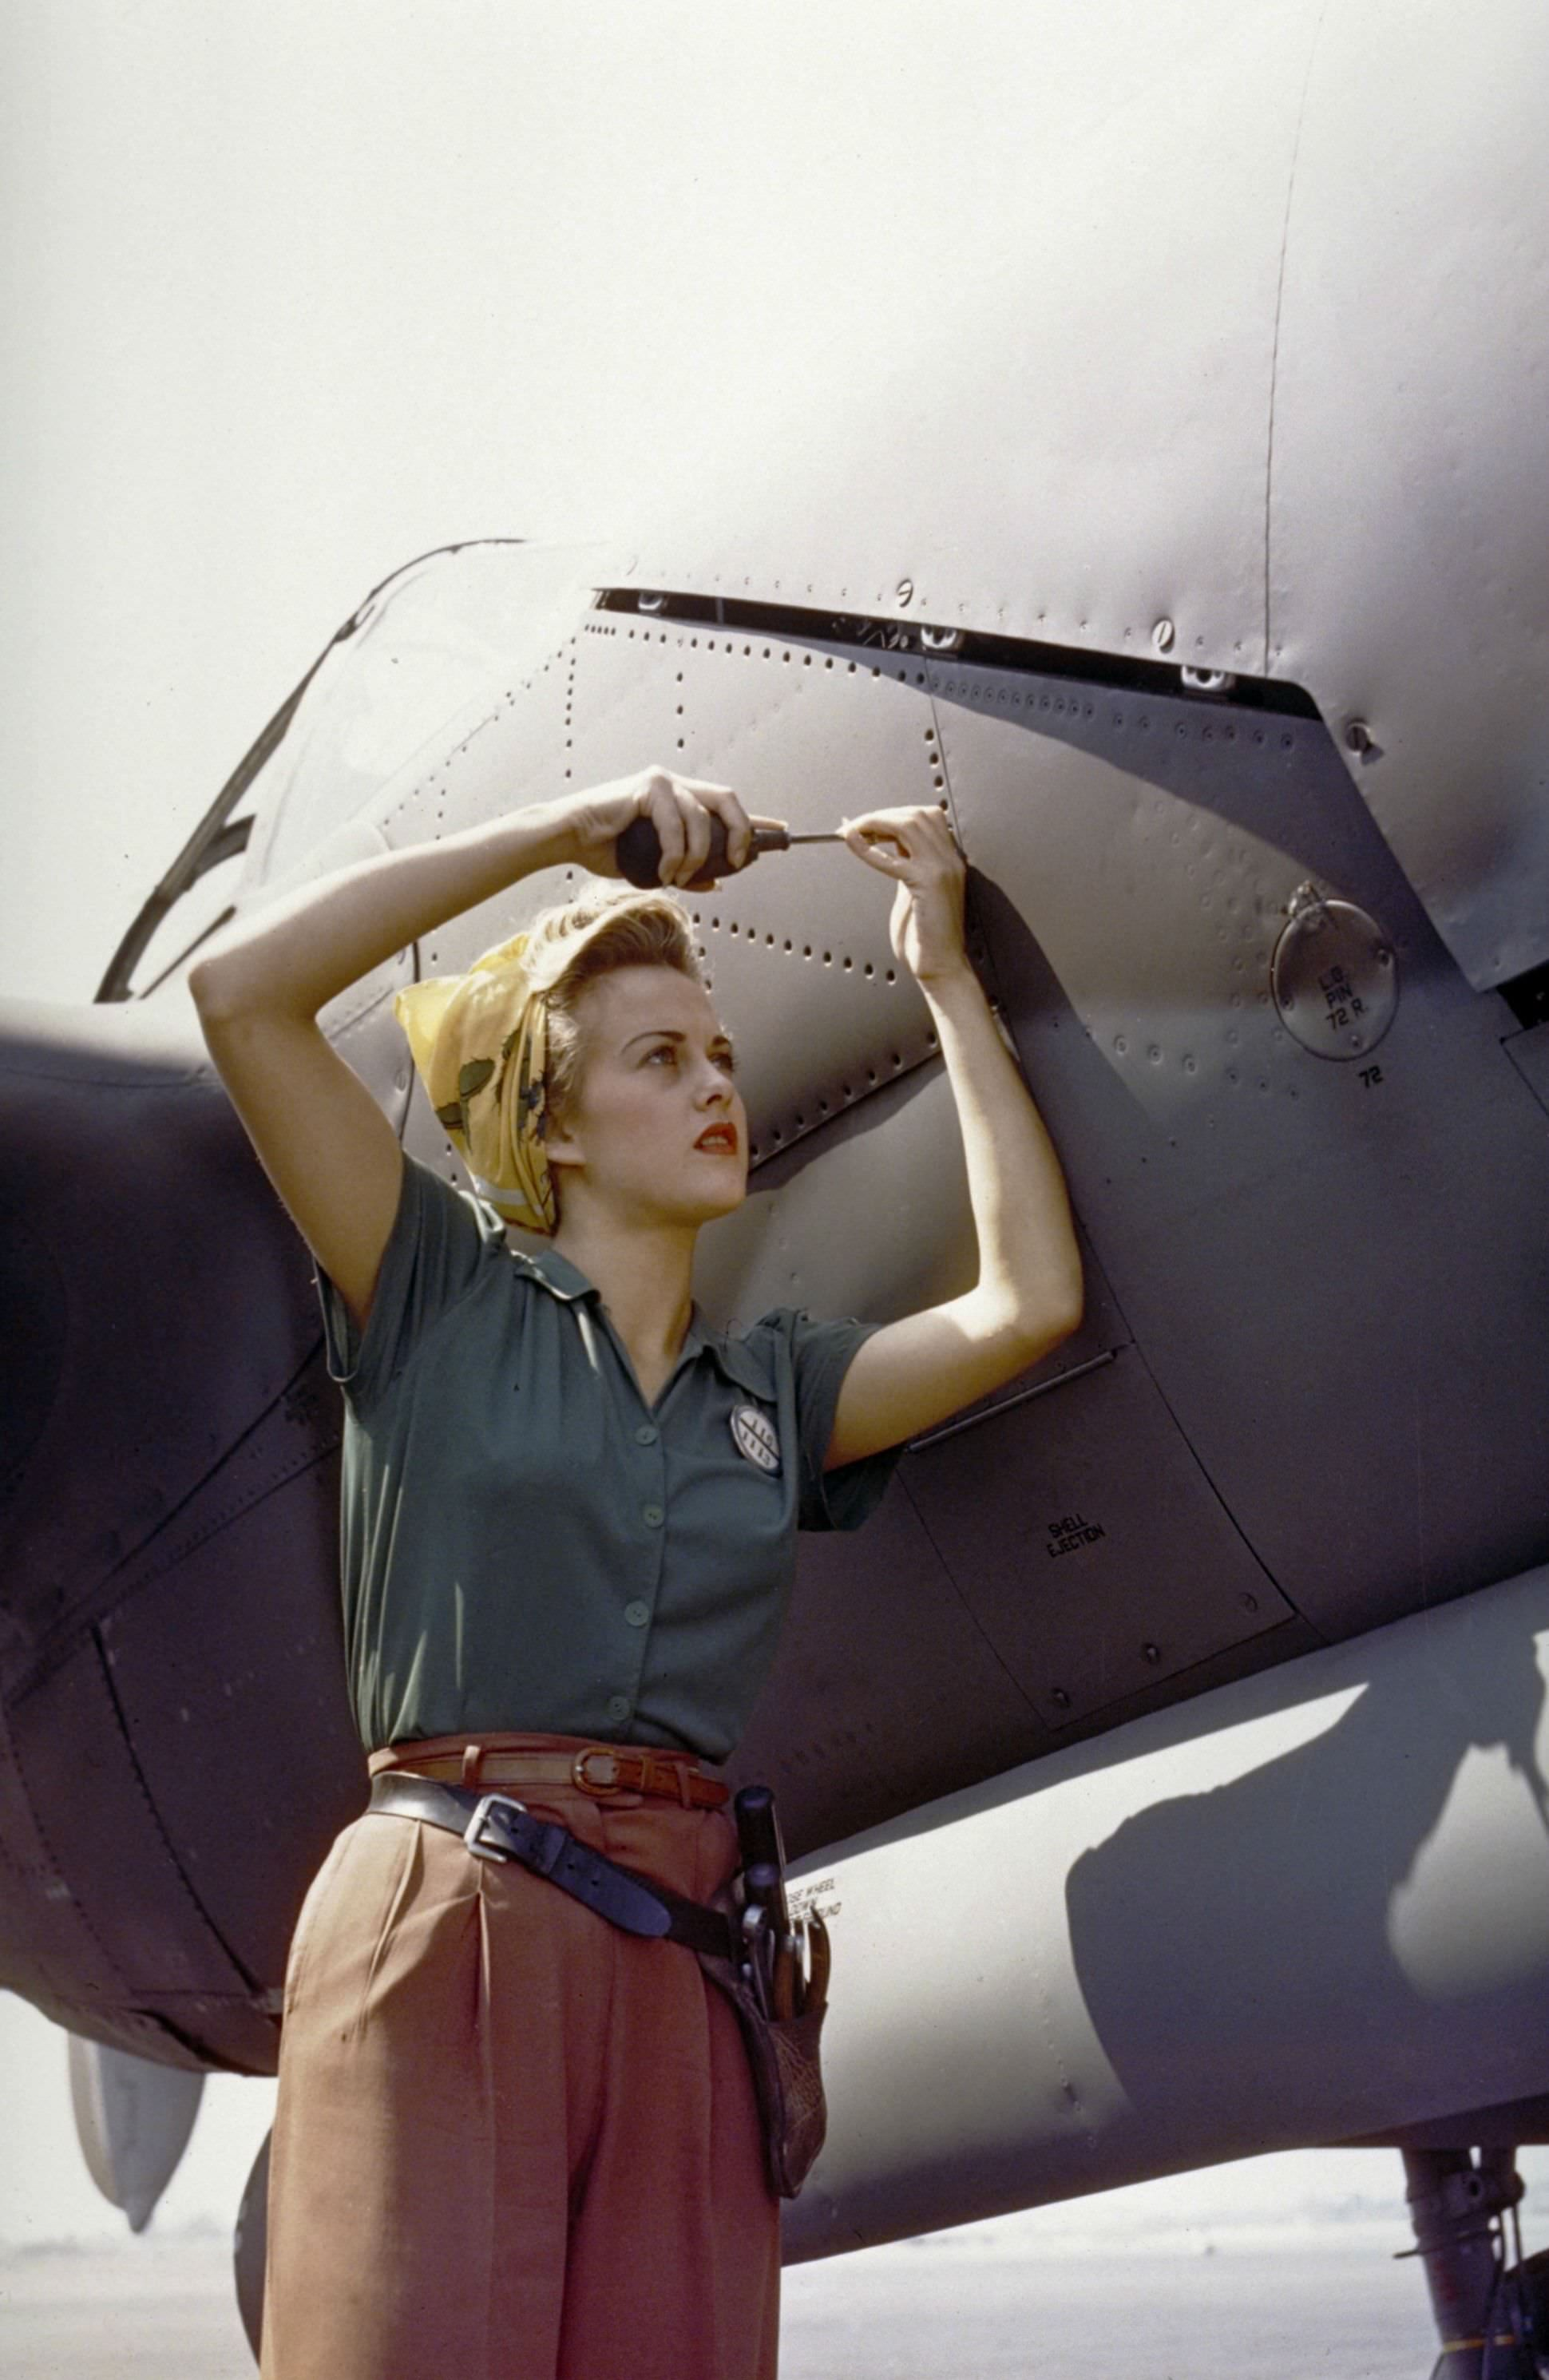 A Lockheed employee works on the fuselage of a P-38 Lightning in California in 1944.